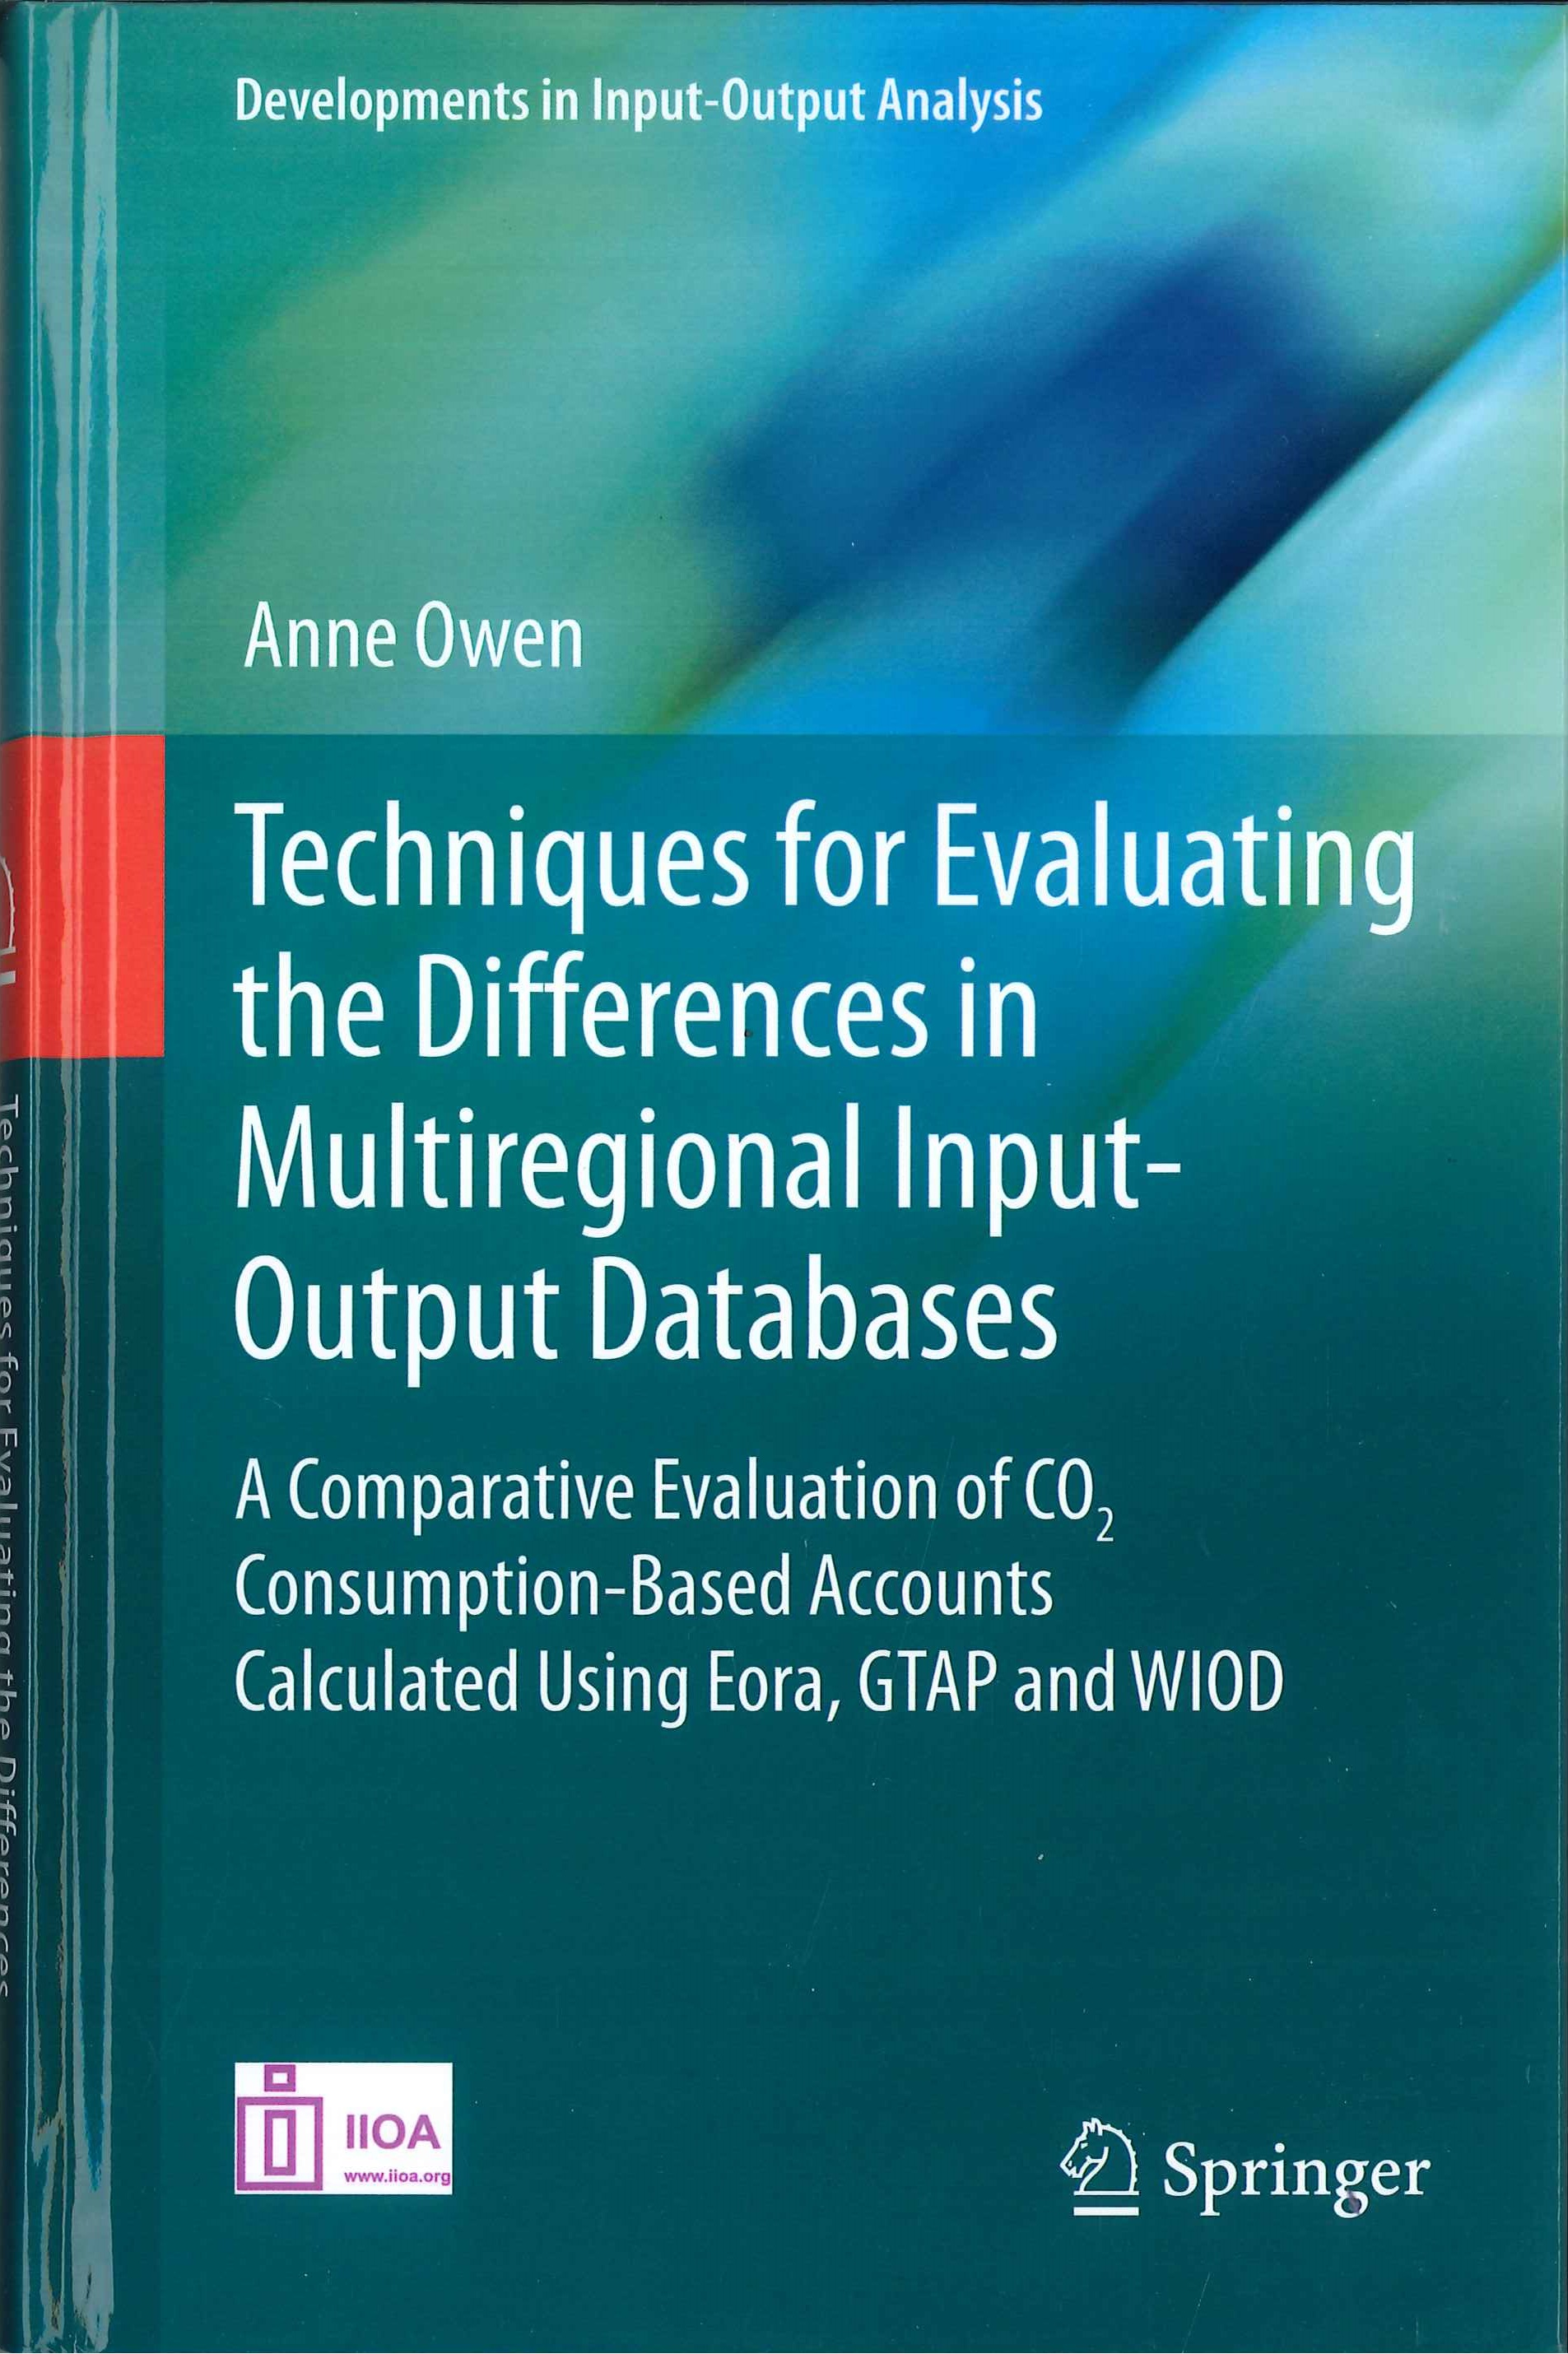 Techniques for evaluating the differences in multiregional input-output databases:a comparative evaluation of CO2 consumption-based accounts calculated using Eora, GTAP and WIOD